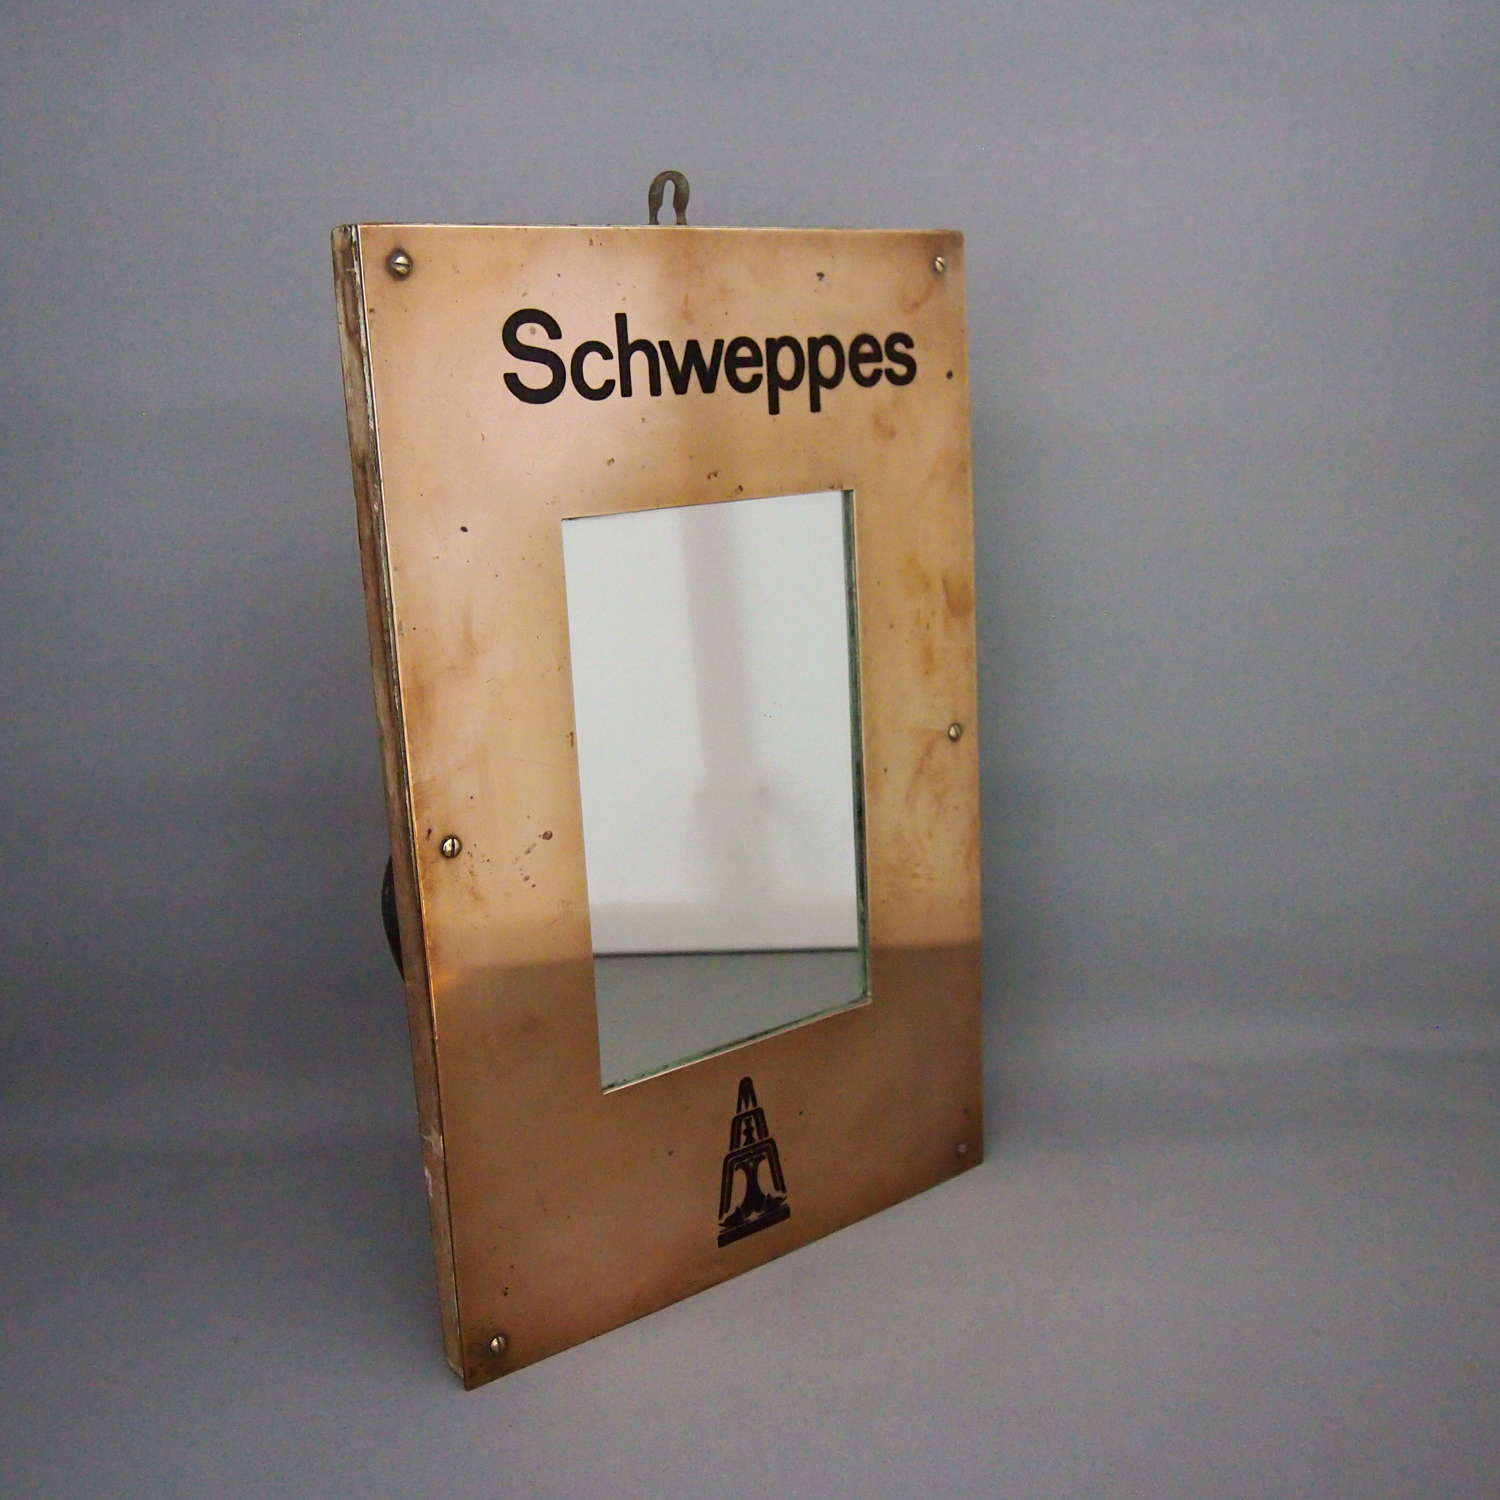 Vintage Schwepps Registered Trademark Brass Mirror.W8612